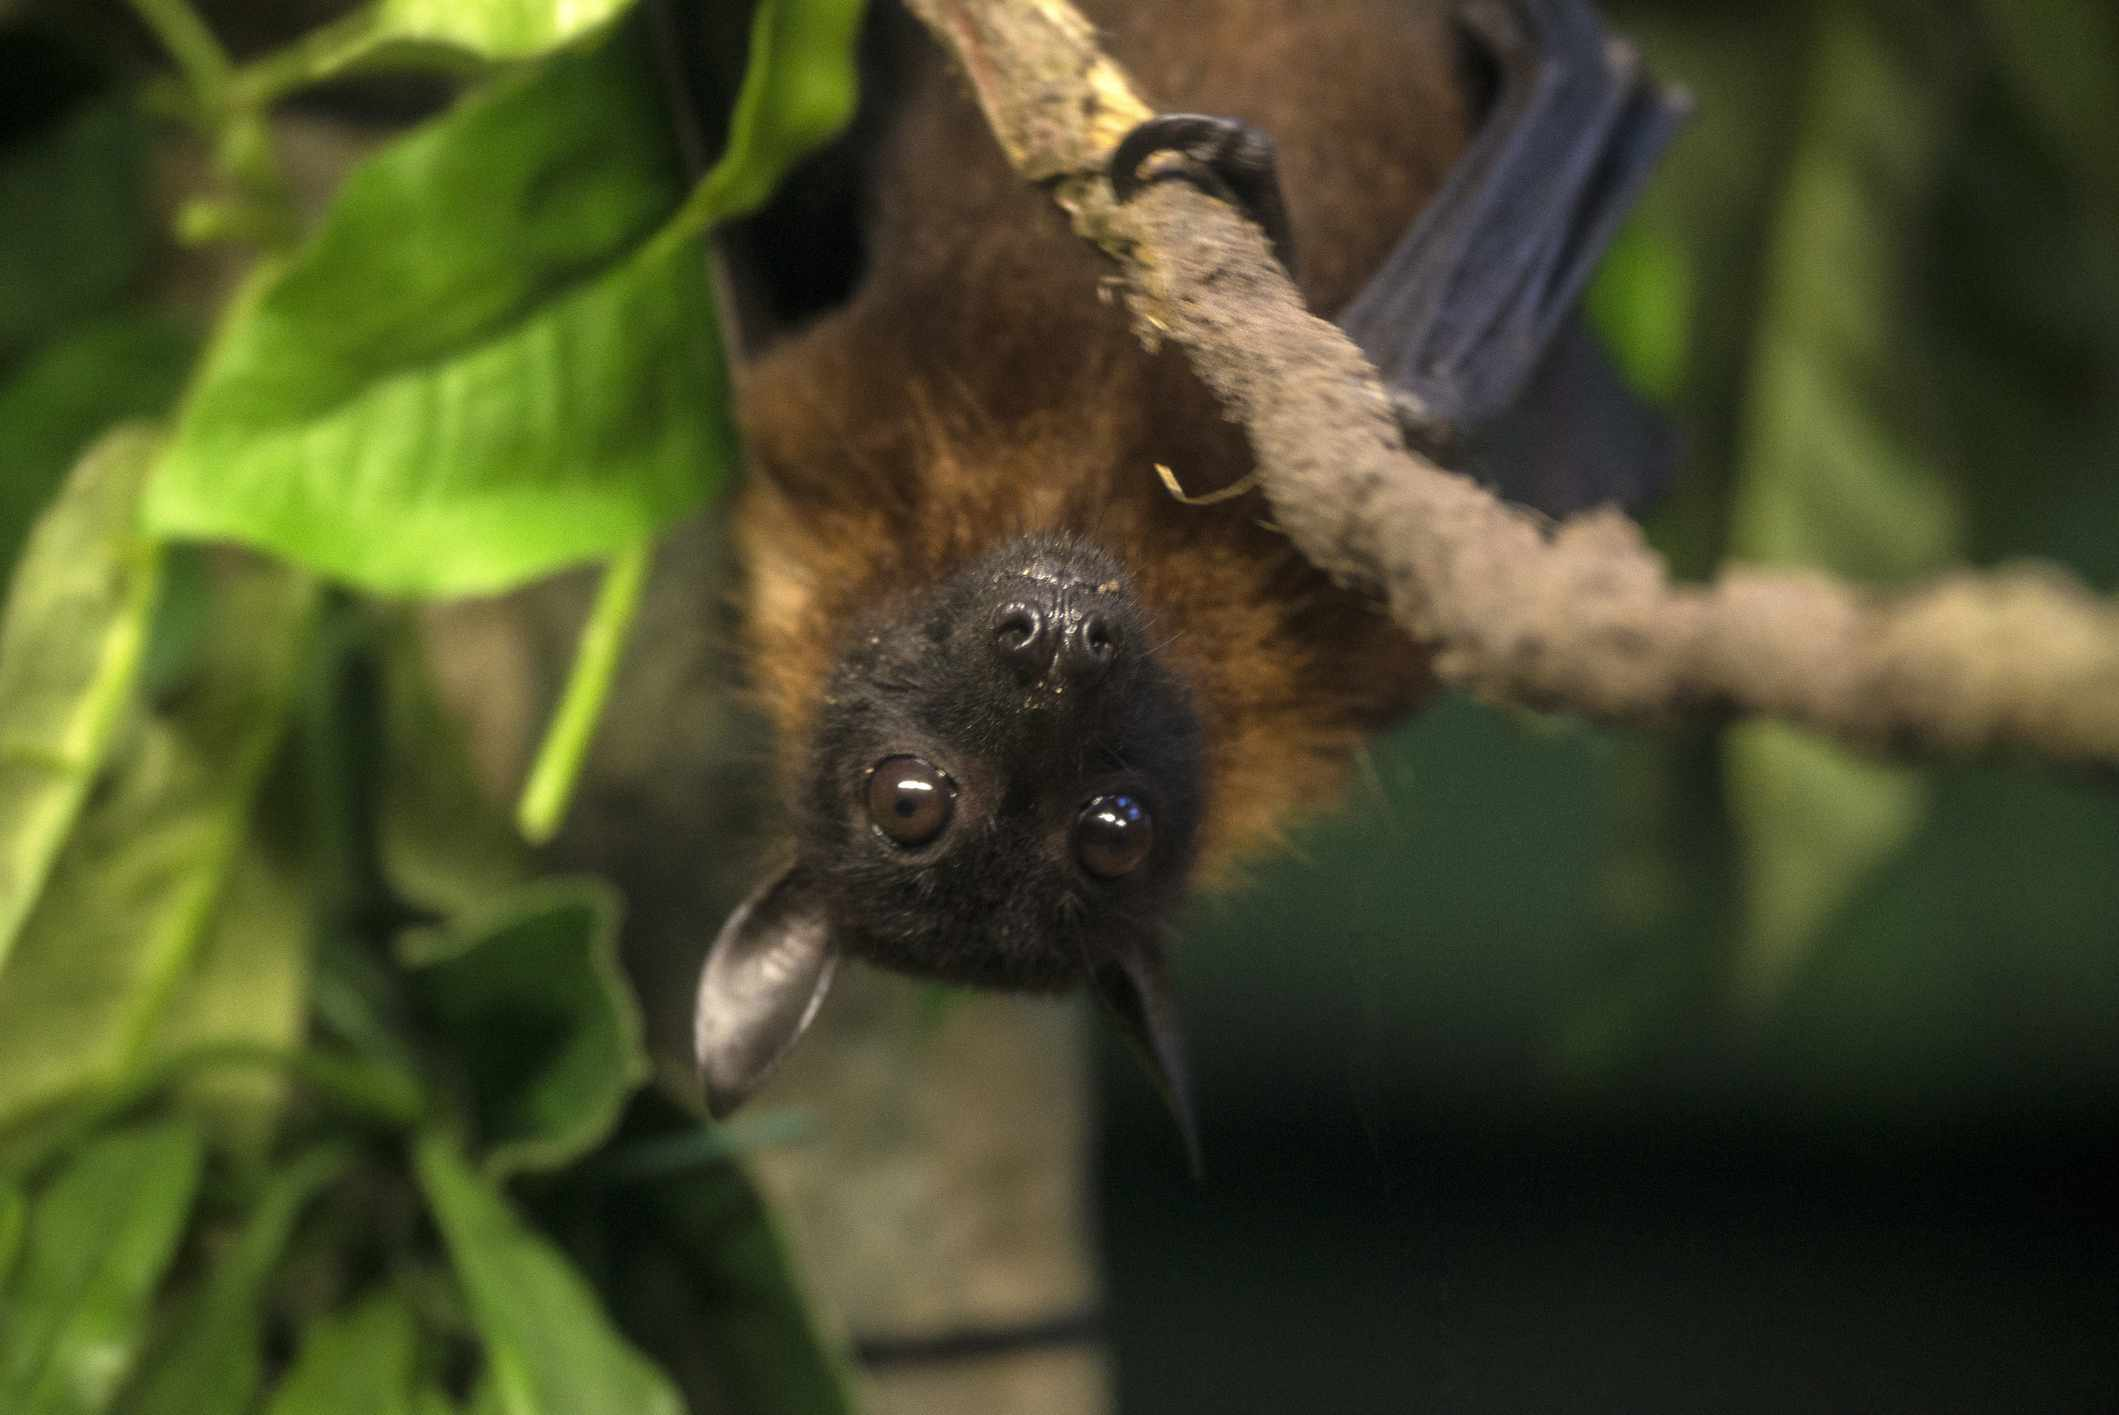 Indian flying fox bat hanging on a branch